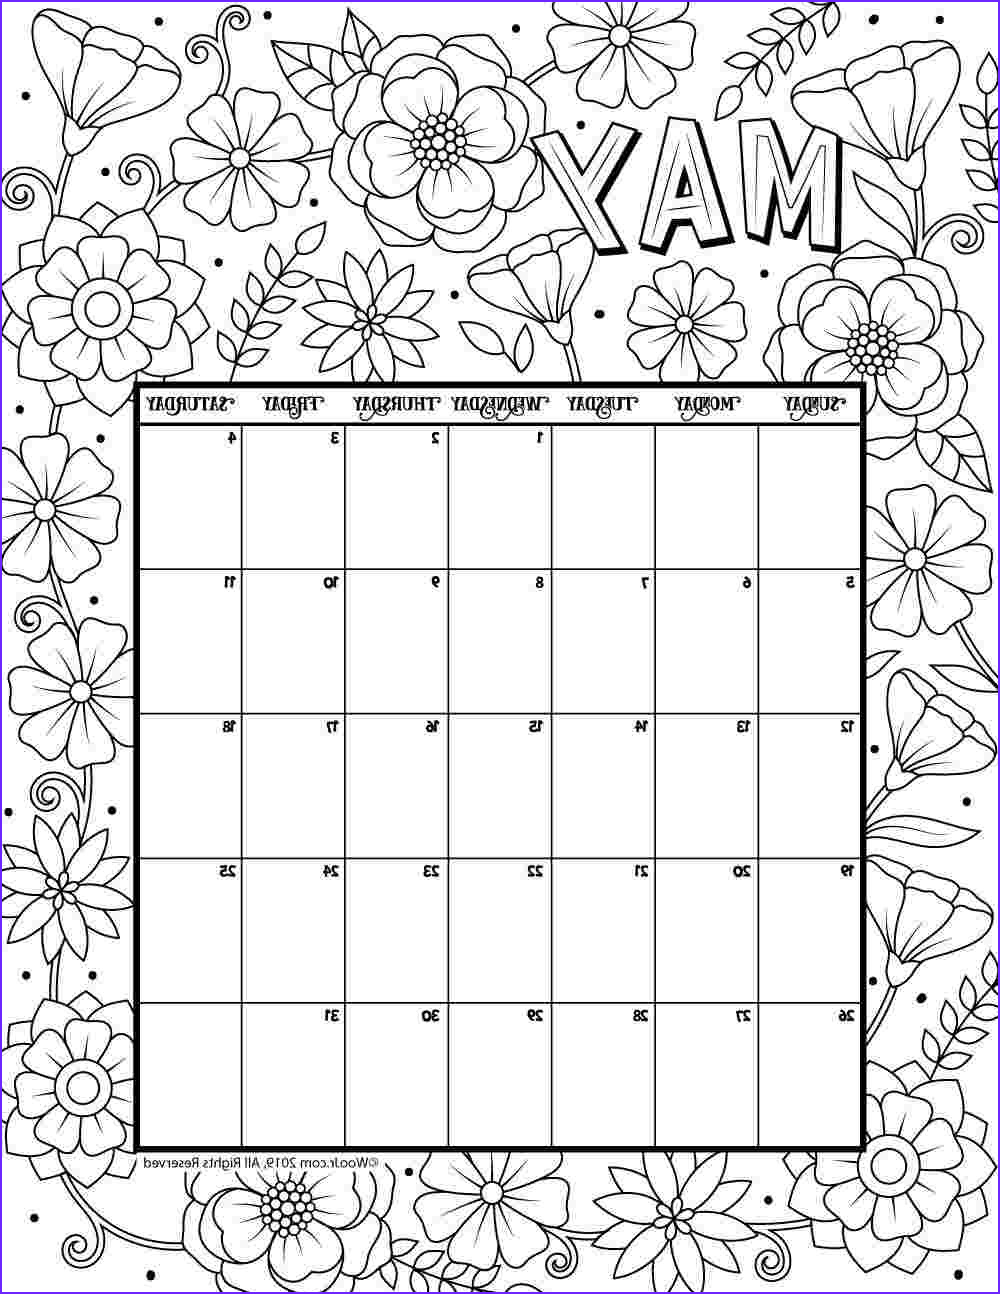 Toddlers Coloring Books Cool Collection Coloring Pages for toddlers for May – Matthewfkernfo